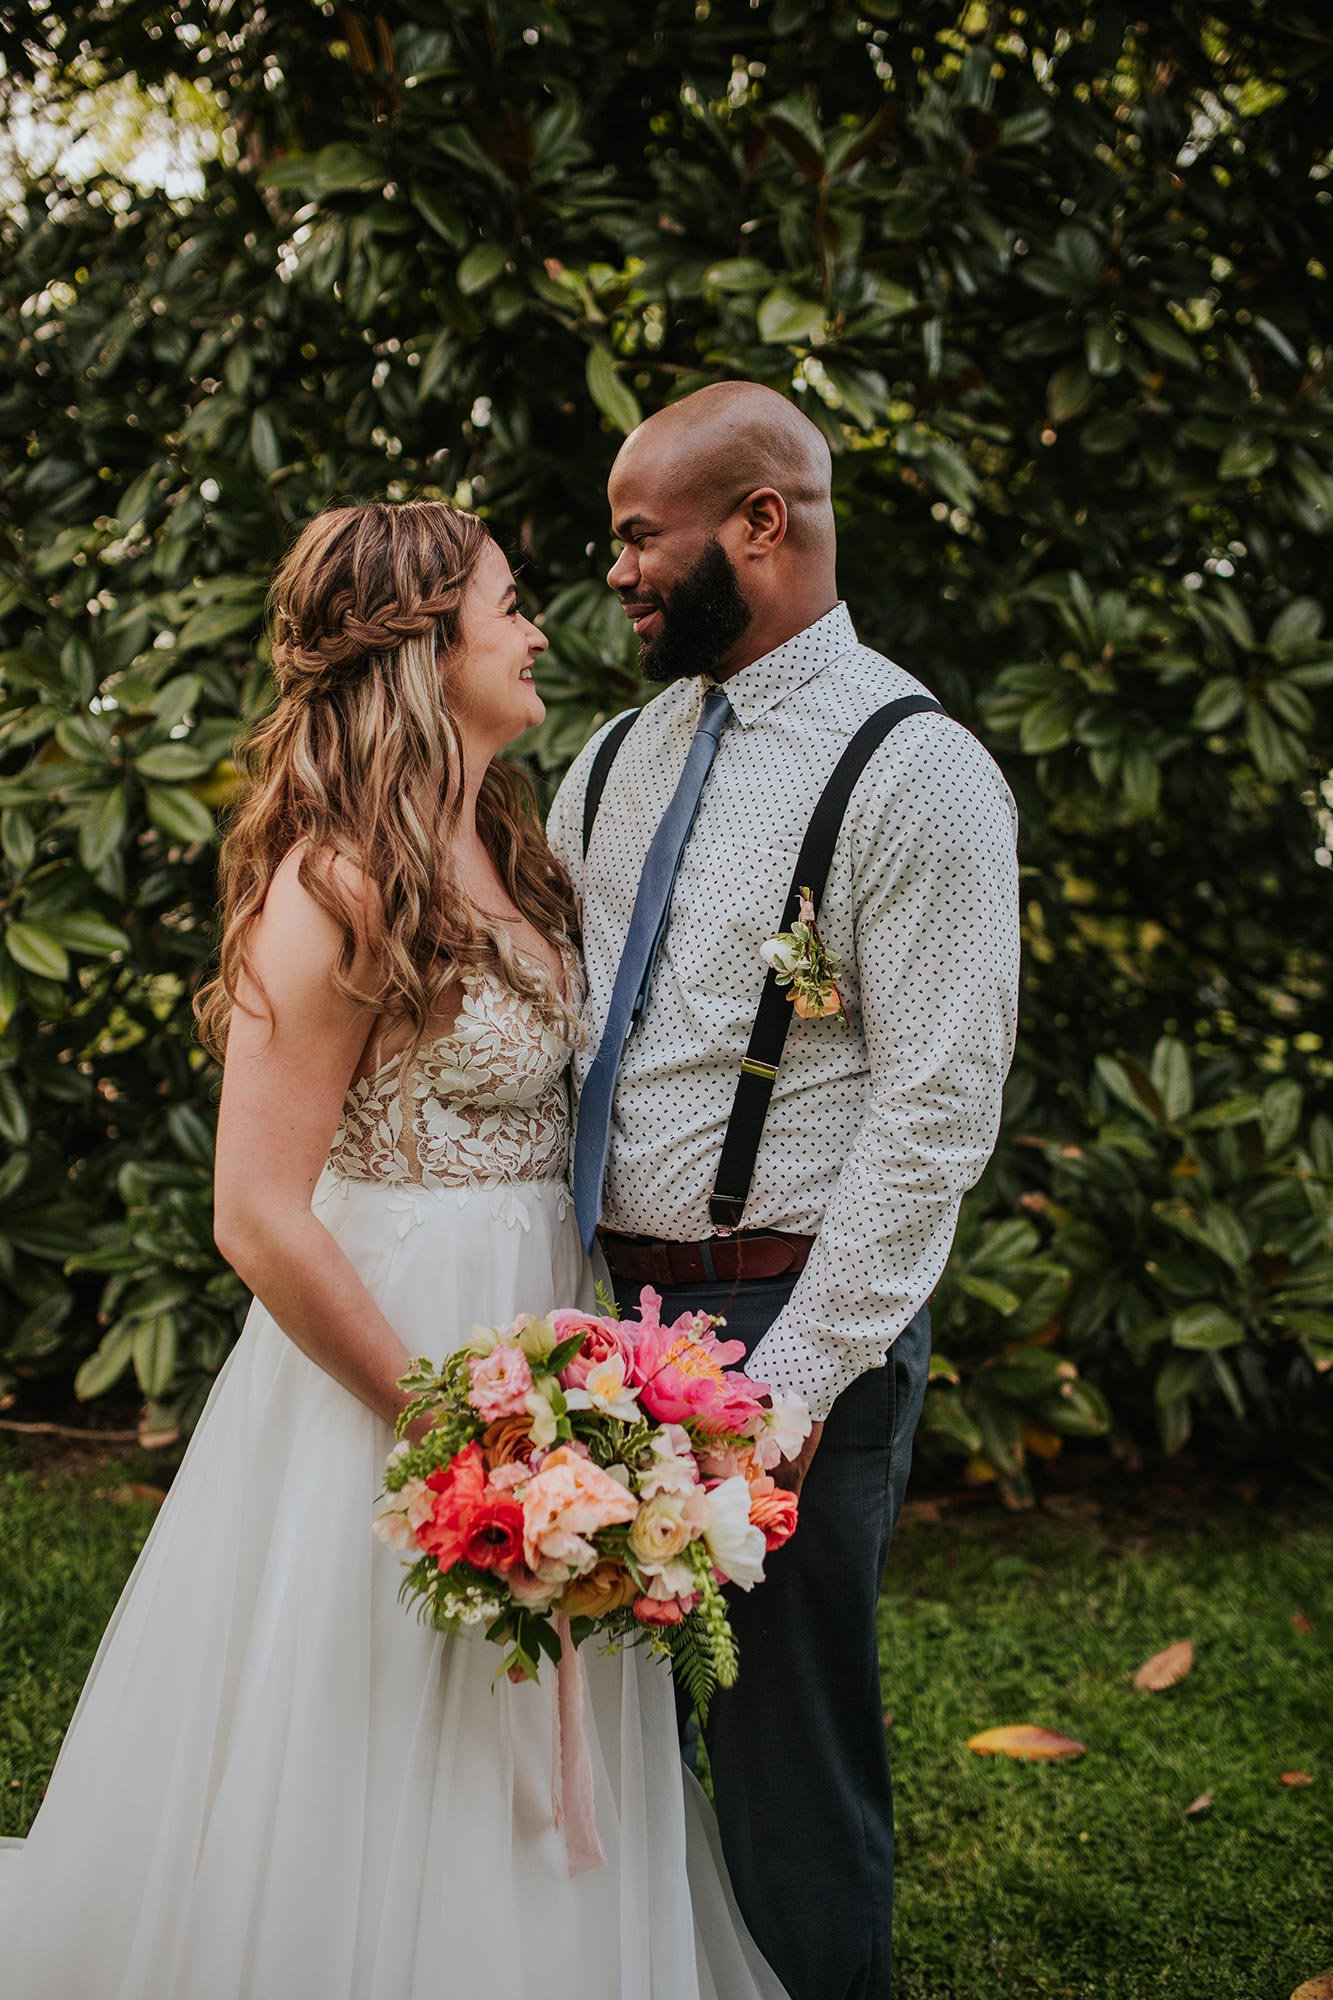 Lush wedding inspiration at Seven Springs VA with bride and groom embraced in garden Carly Romeo & Co.